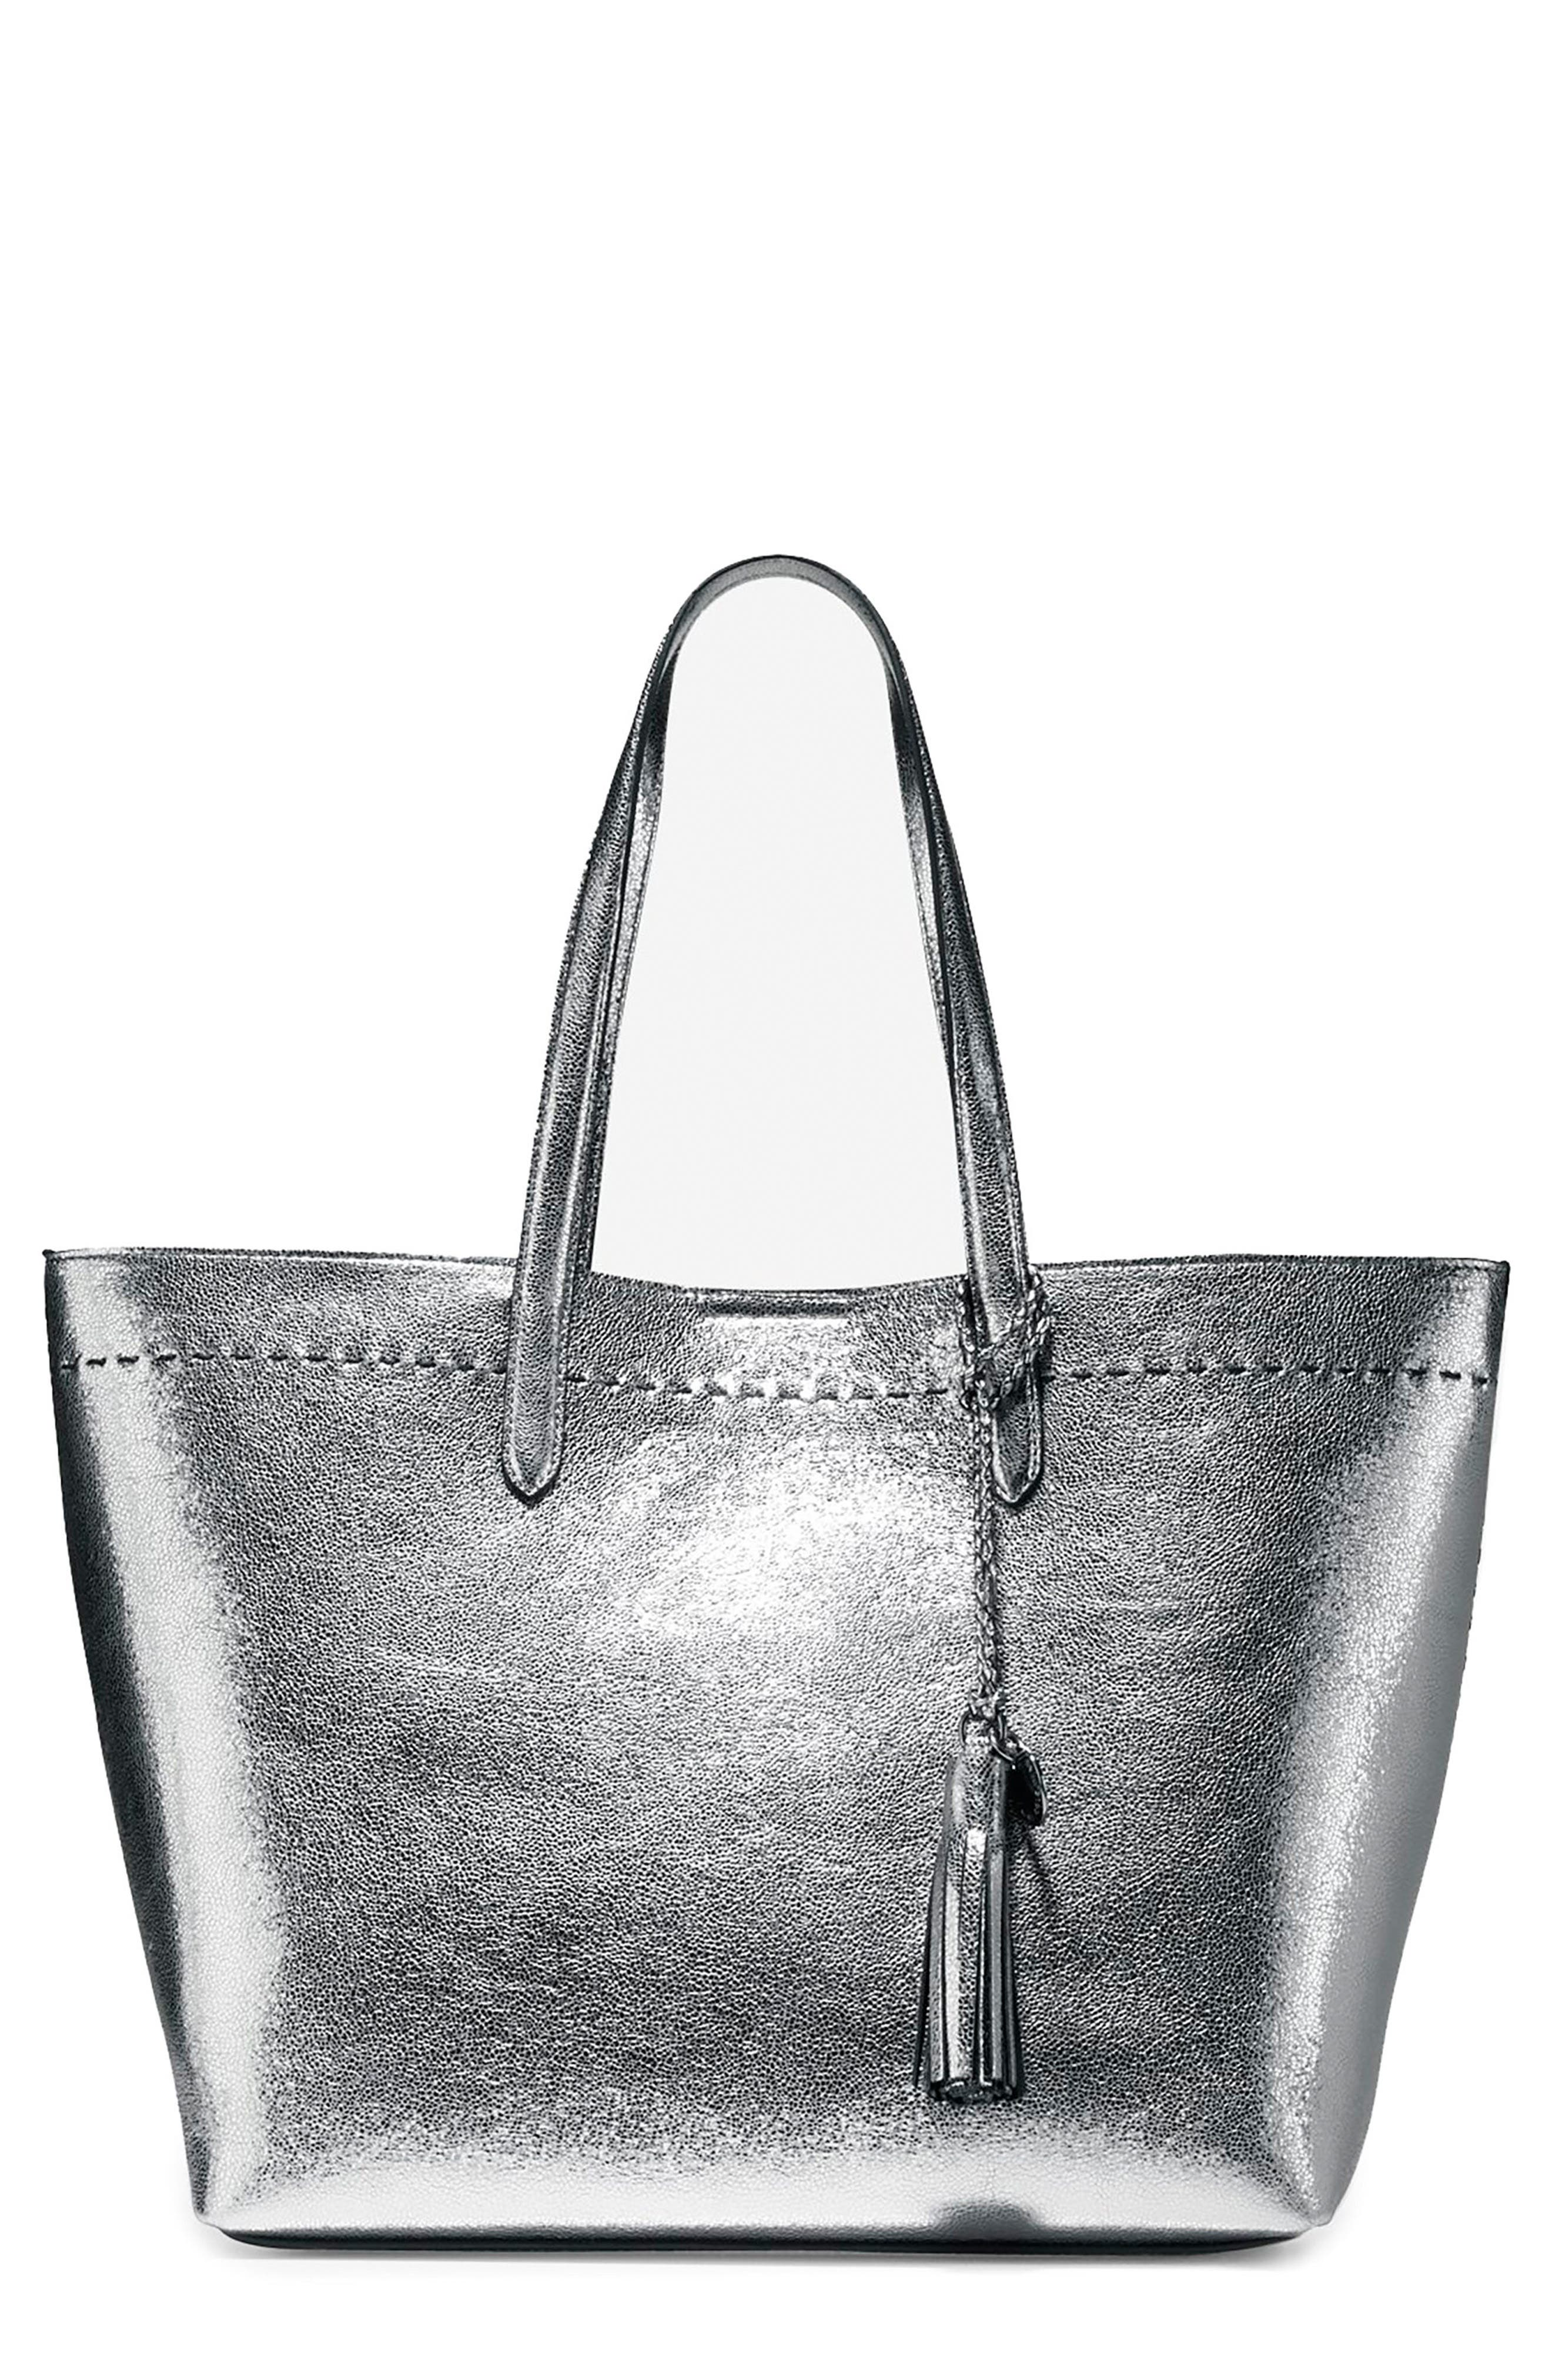 Alternate Image 1 Selected - Cole Haan Payson Metallic Leather Tote